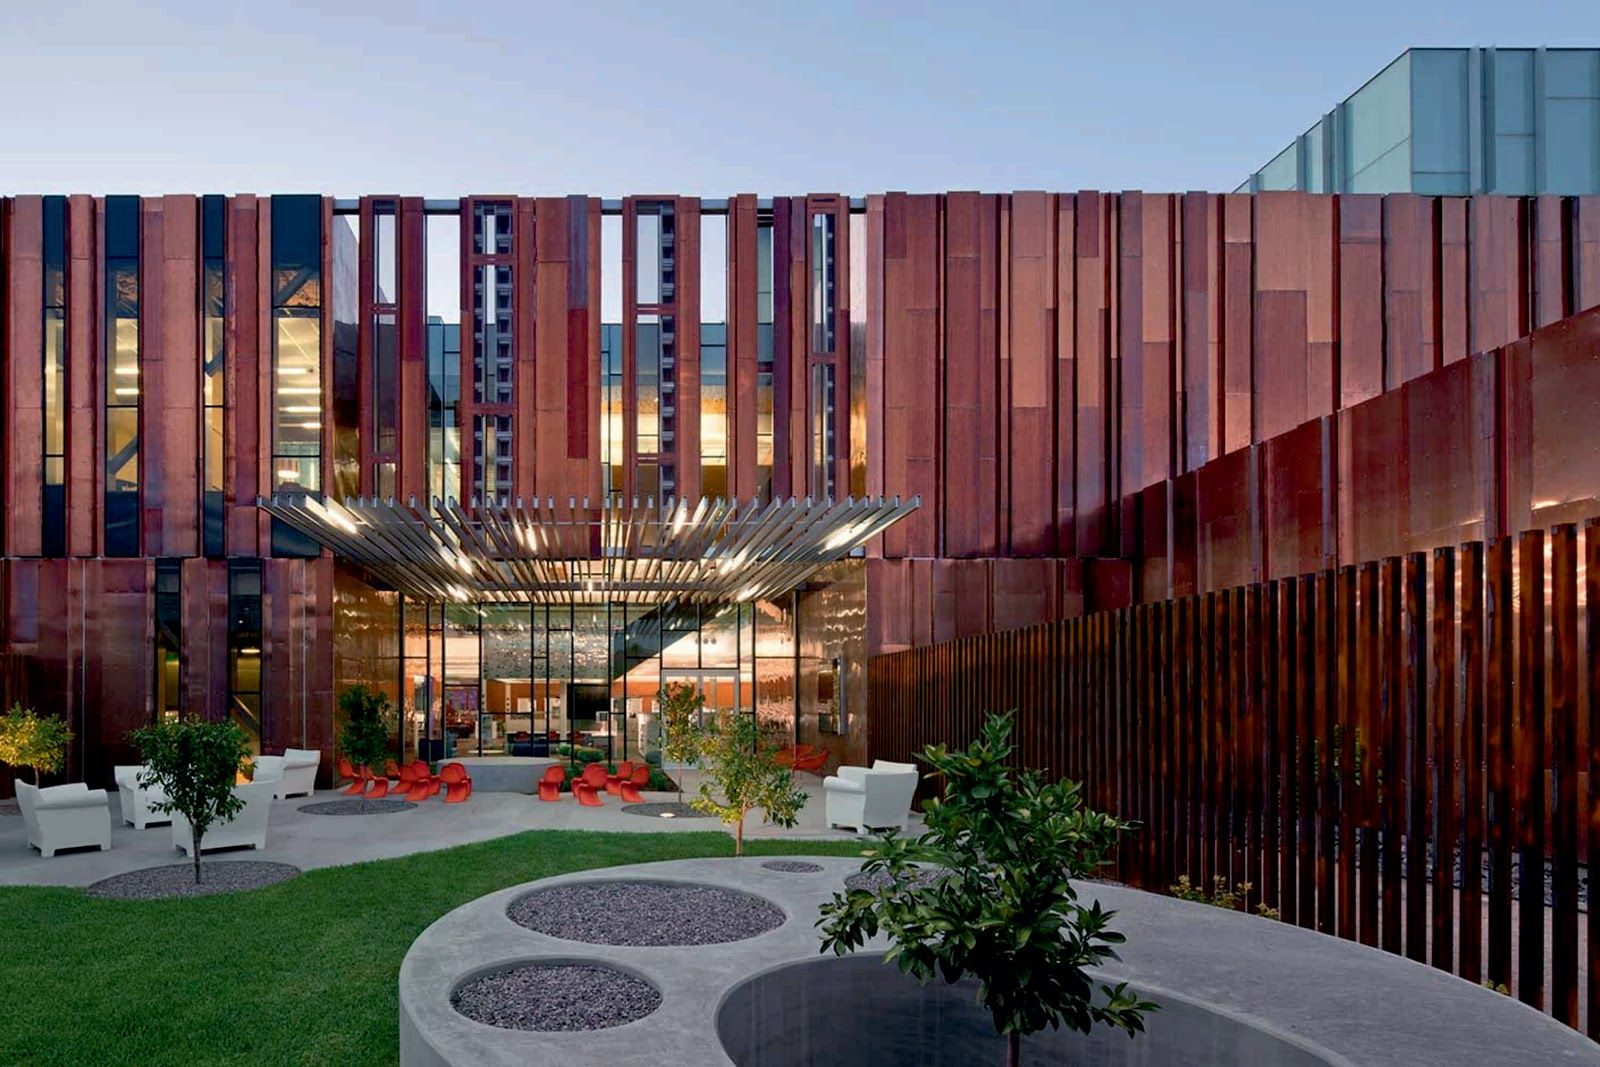 South Mountain Community Library 05 #architecture